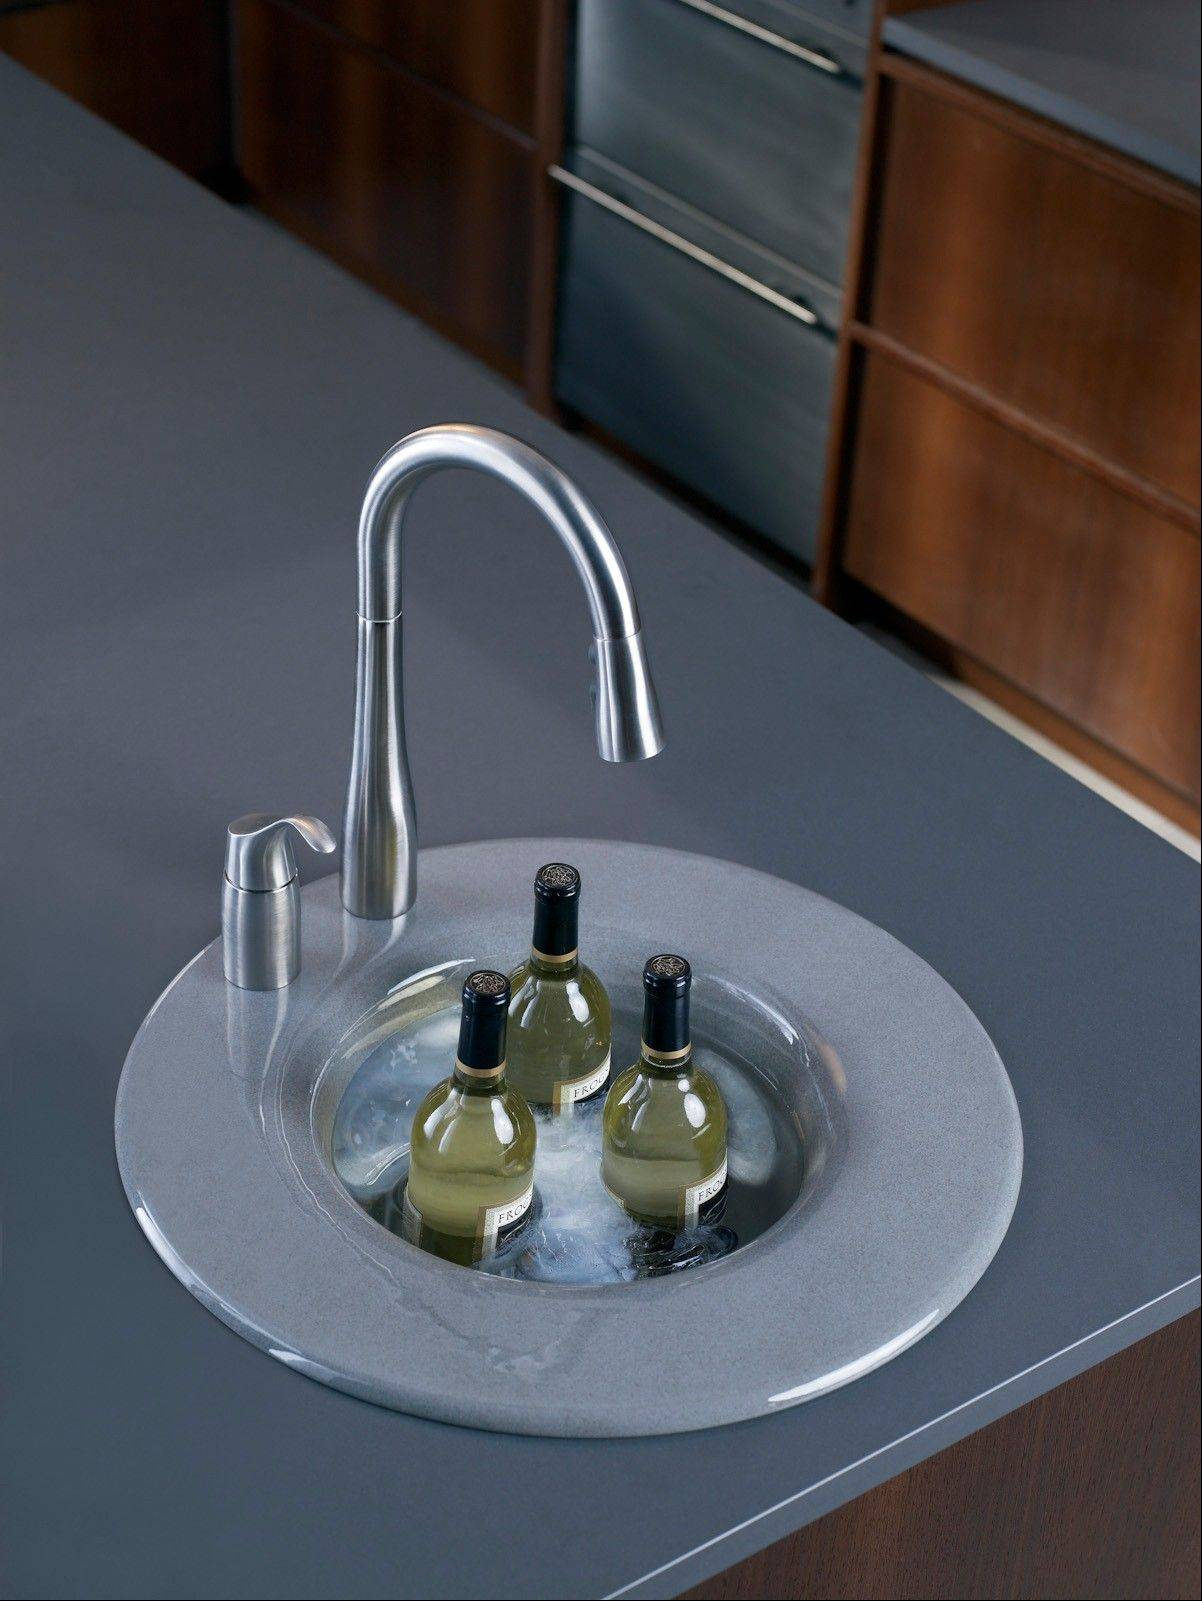 Because of its versatility and vibrant color possibilities, enameled cast iron is fast becoming the material of choice among those wanting to install high-end bar sinks.